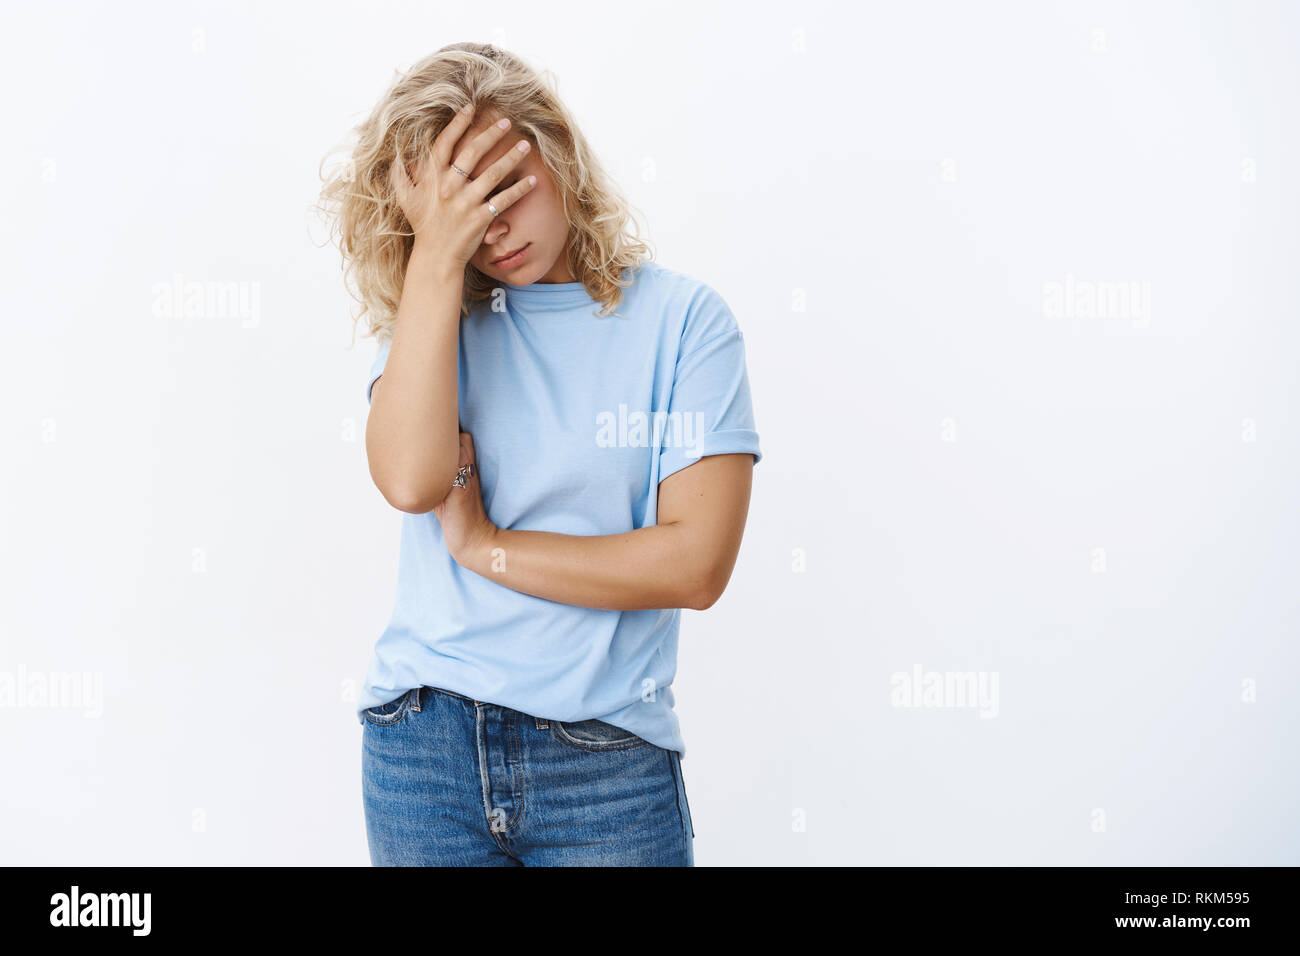 Oh God what humiliation. Portrait of fed up drained and distressed young woman making facepalm holding hand on face with disappointment, posing - Stock Image